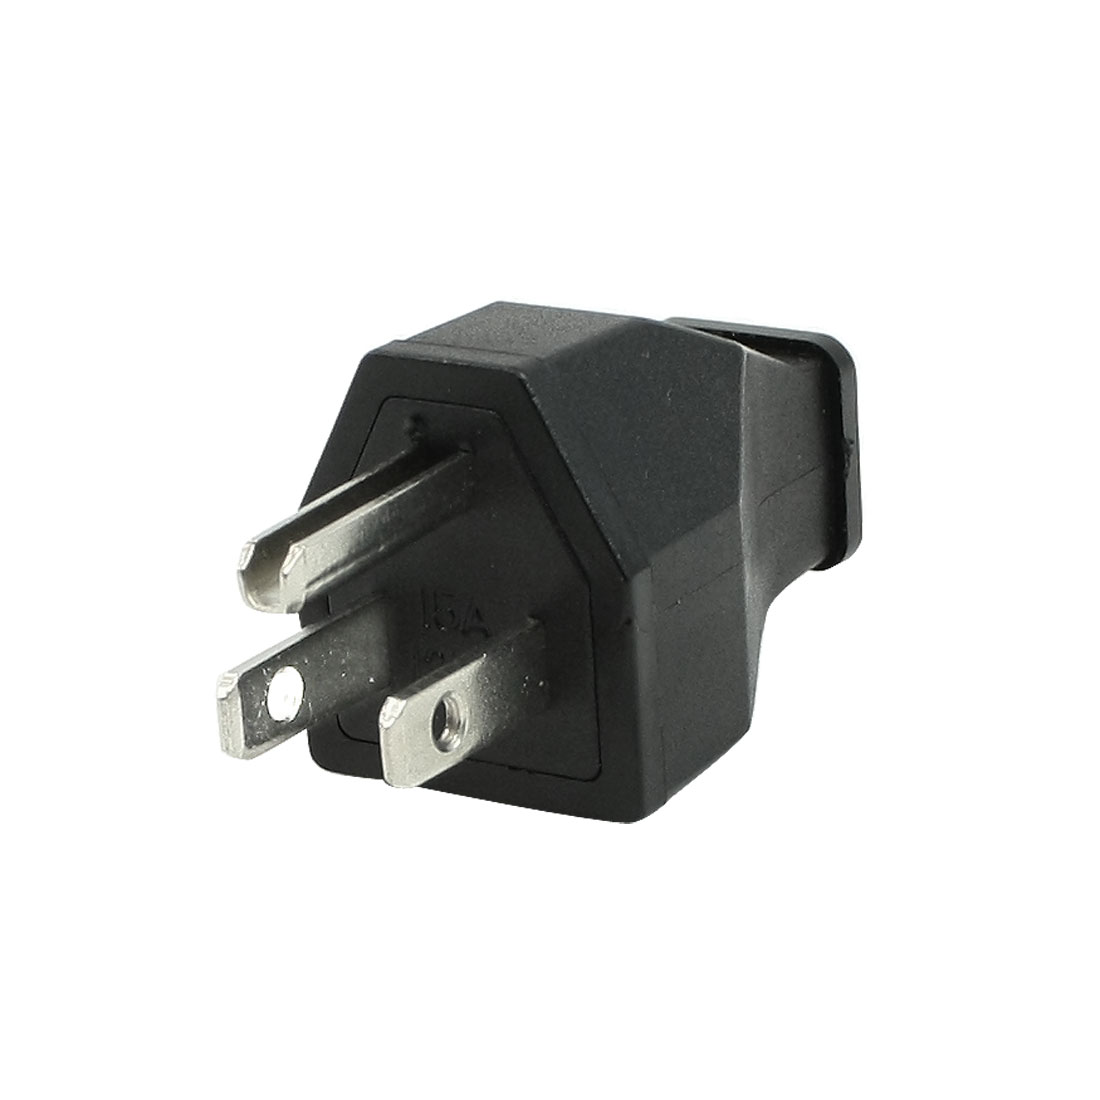 AC 125V 15A 3 Terminals Male Power Cord Connector Black Japan US Plug